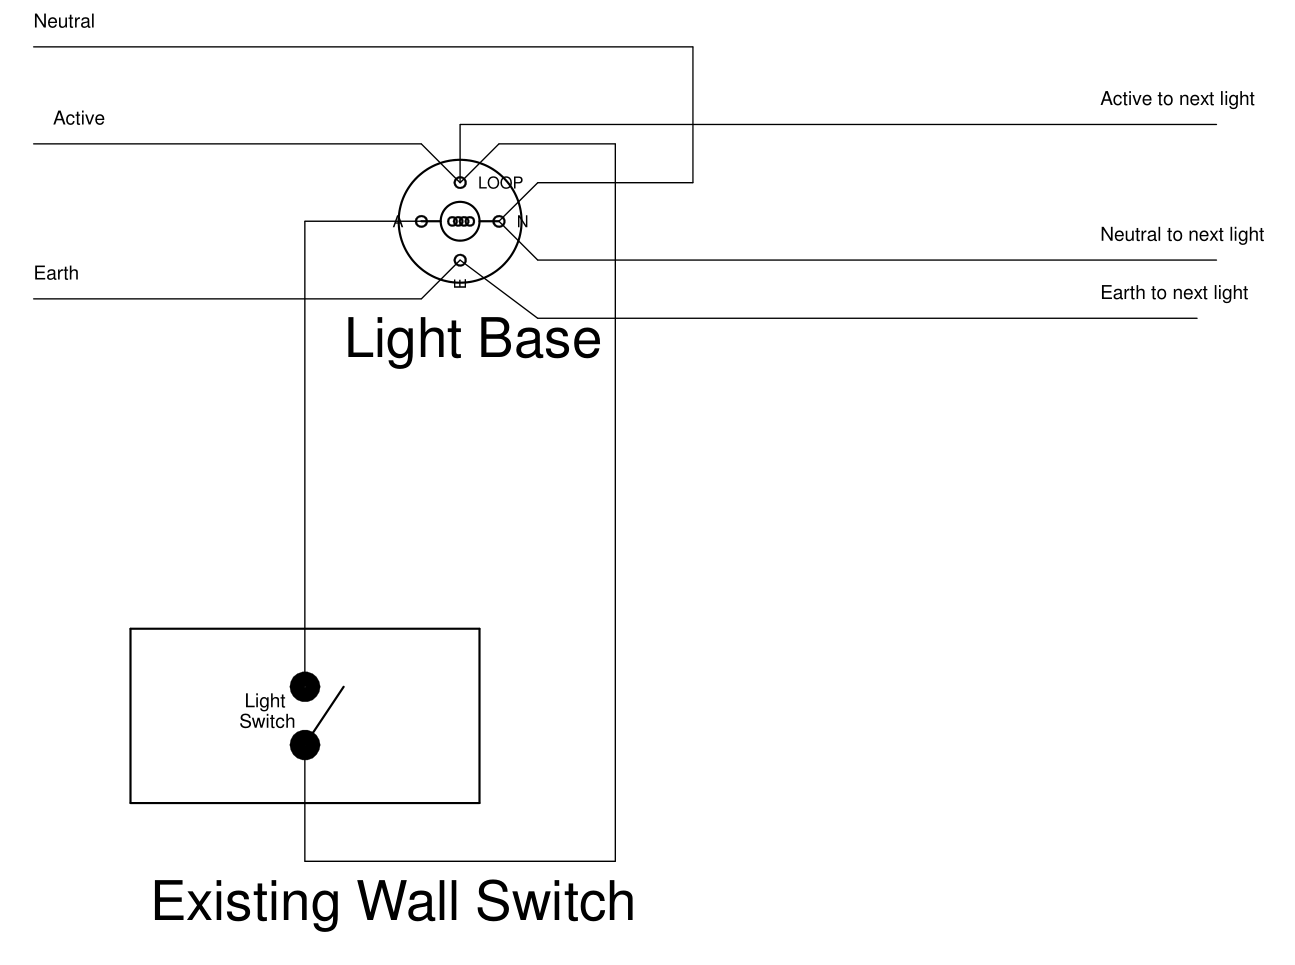 Retrofit House Lights With Wifi Keep Existing Switches Controlled Wiring From Light To Switch Active Neutral And Earth Wires Are Often Looped Base For Each The Is Down Wall Back